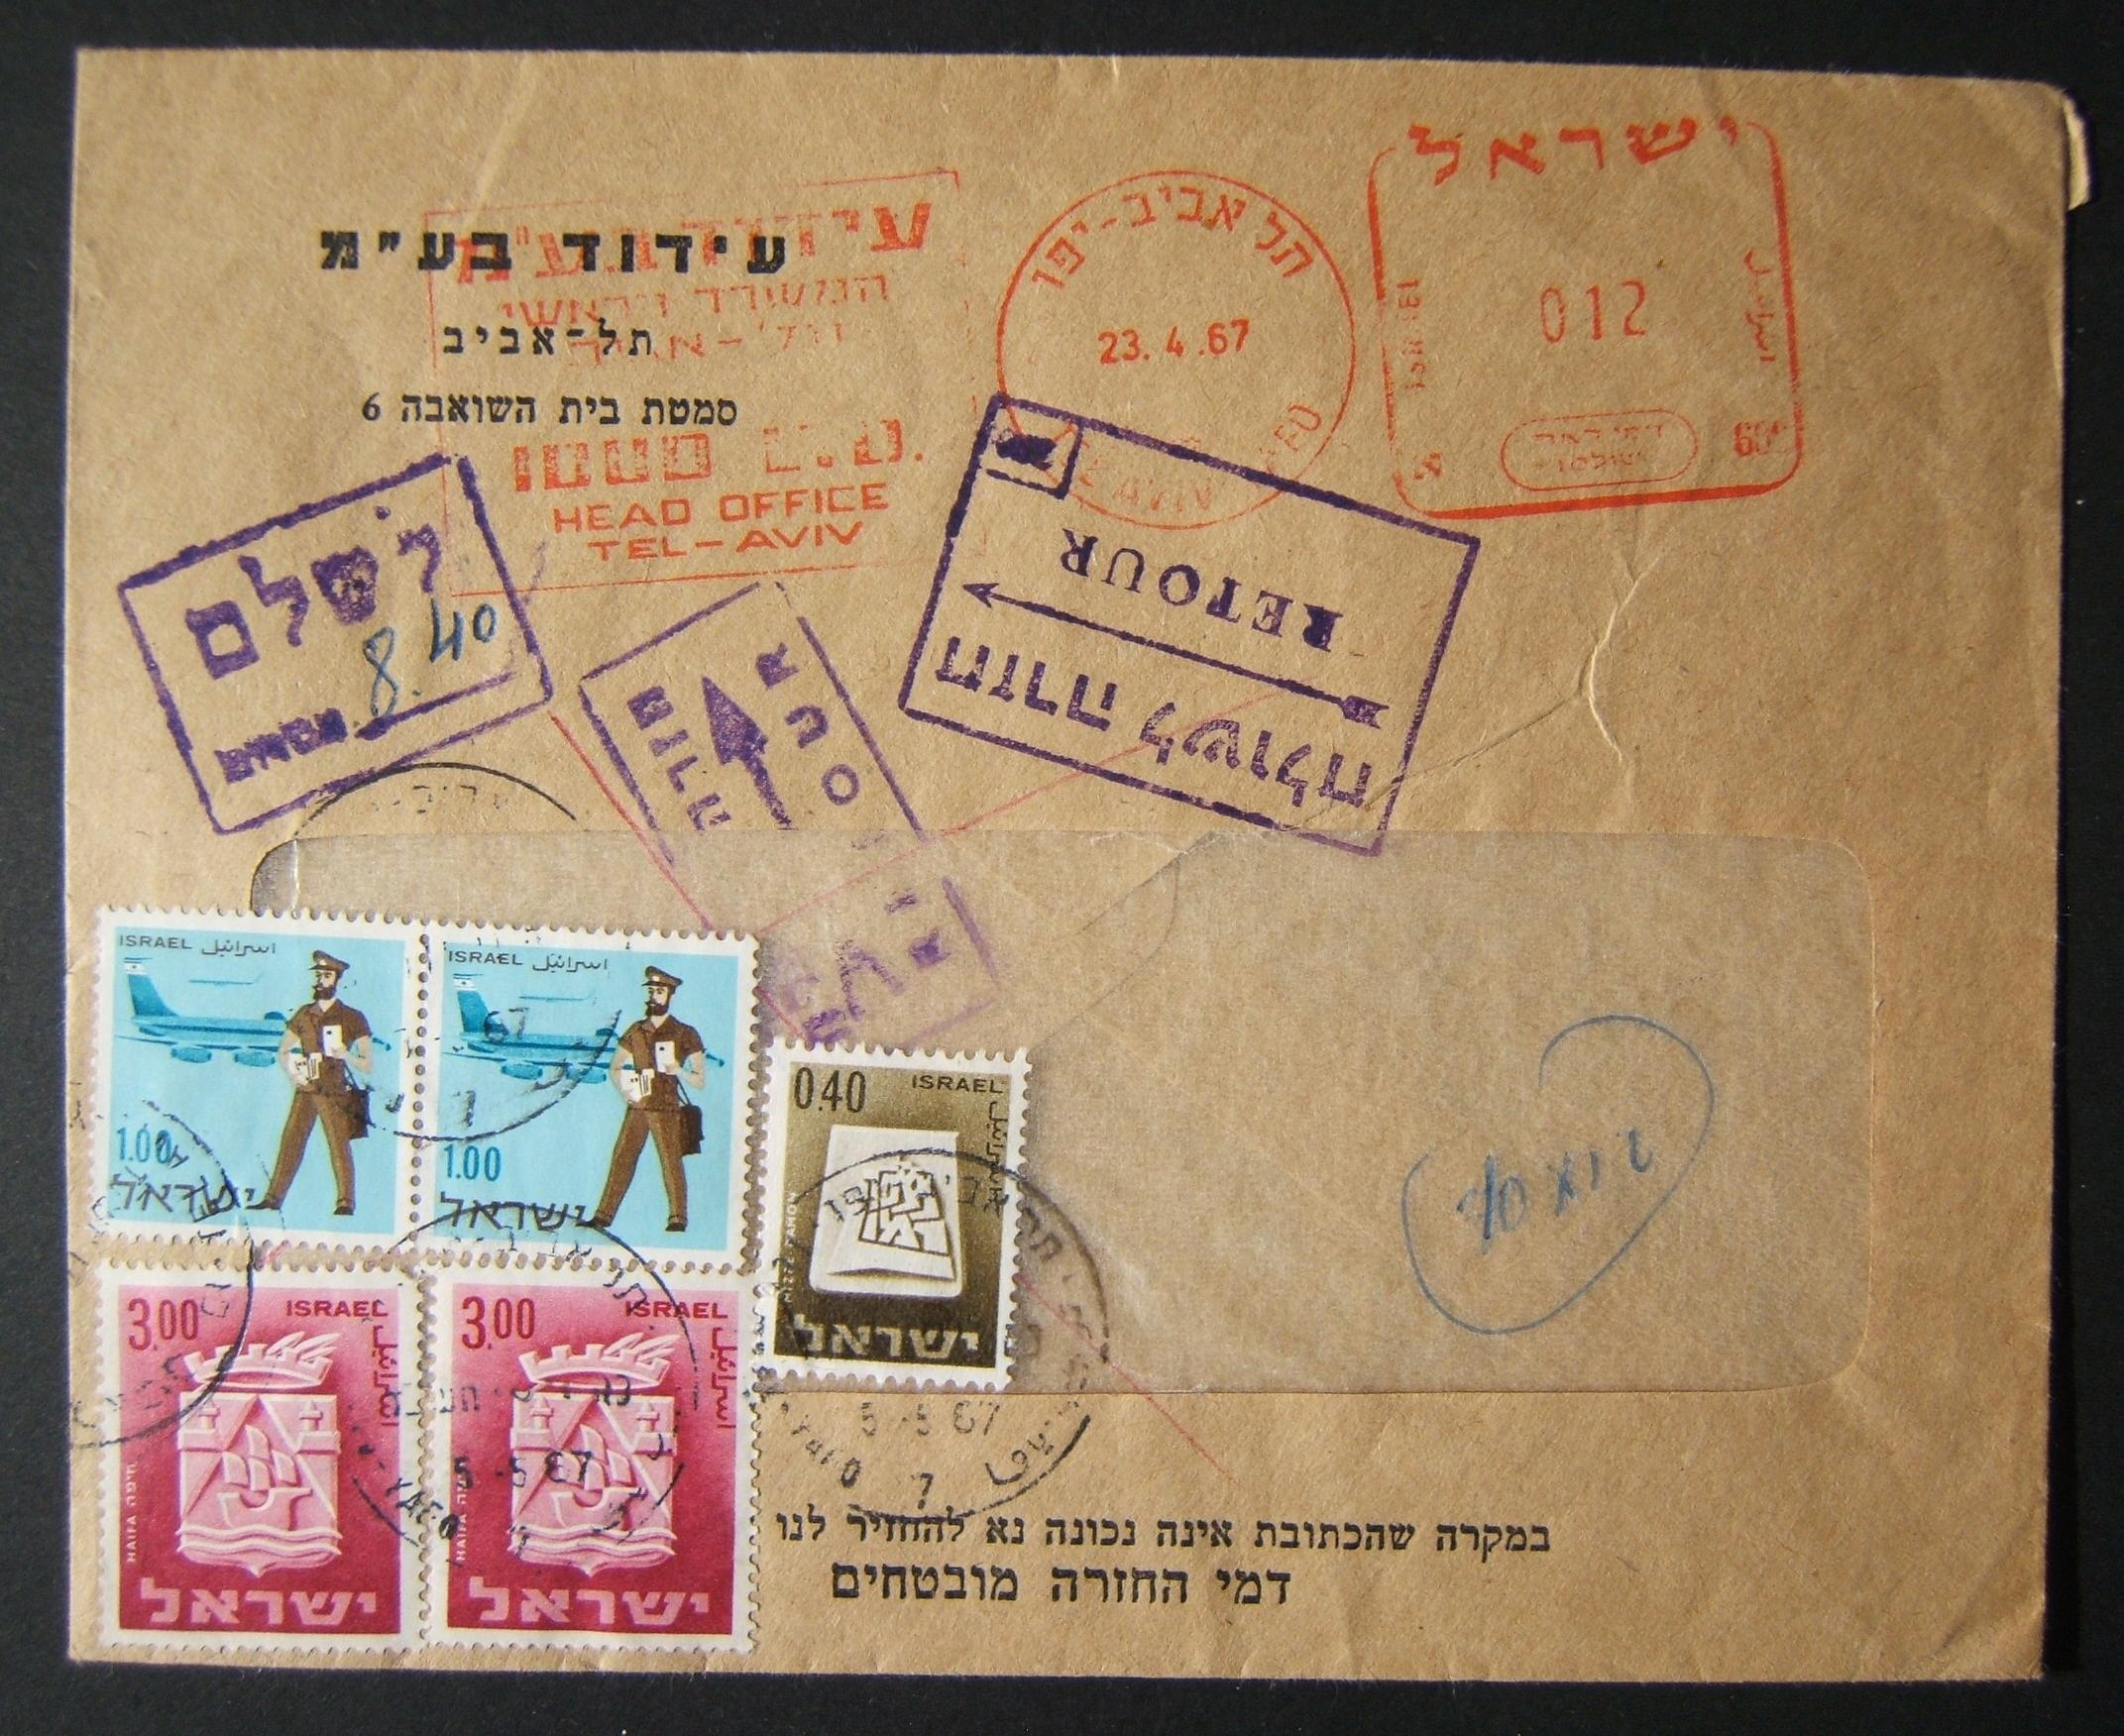 1967 domestic 'top of the pile' taxed franking: 23-4-67 pm comm. cv ex TLV franked by meter at DO-12 period 12 Ag rate, returned to sender as address unknown (cachet & manuscript);